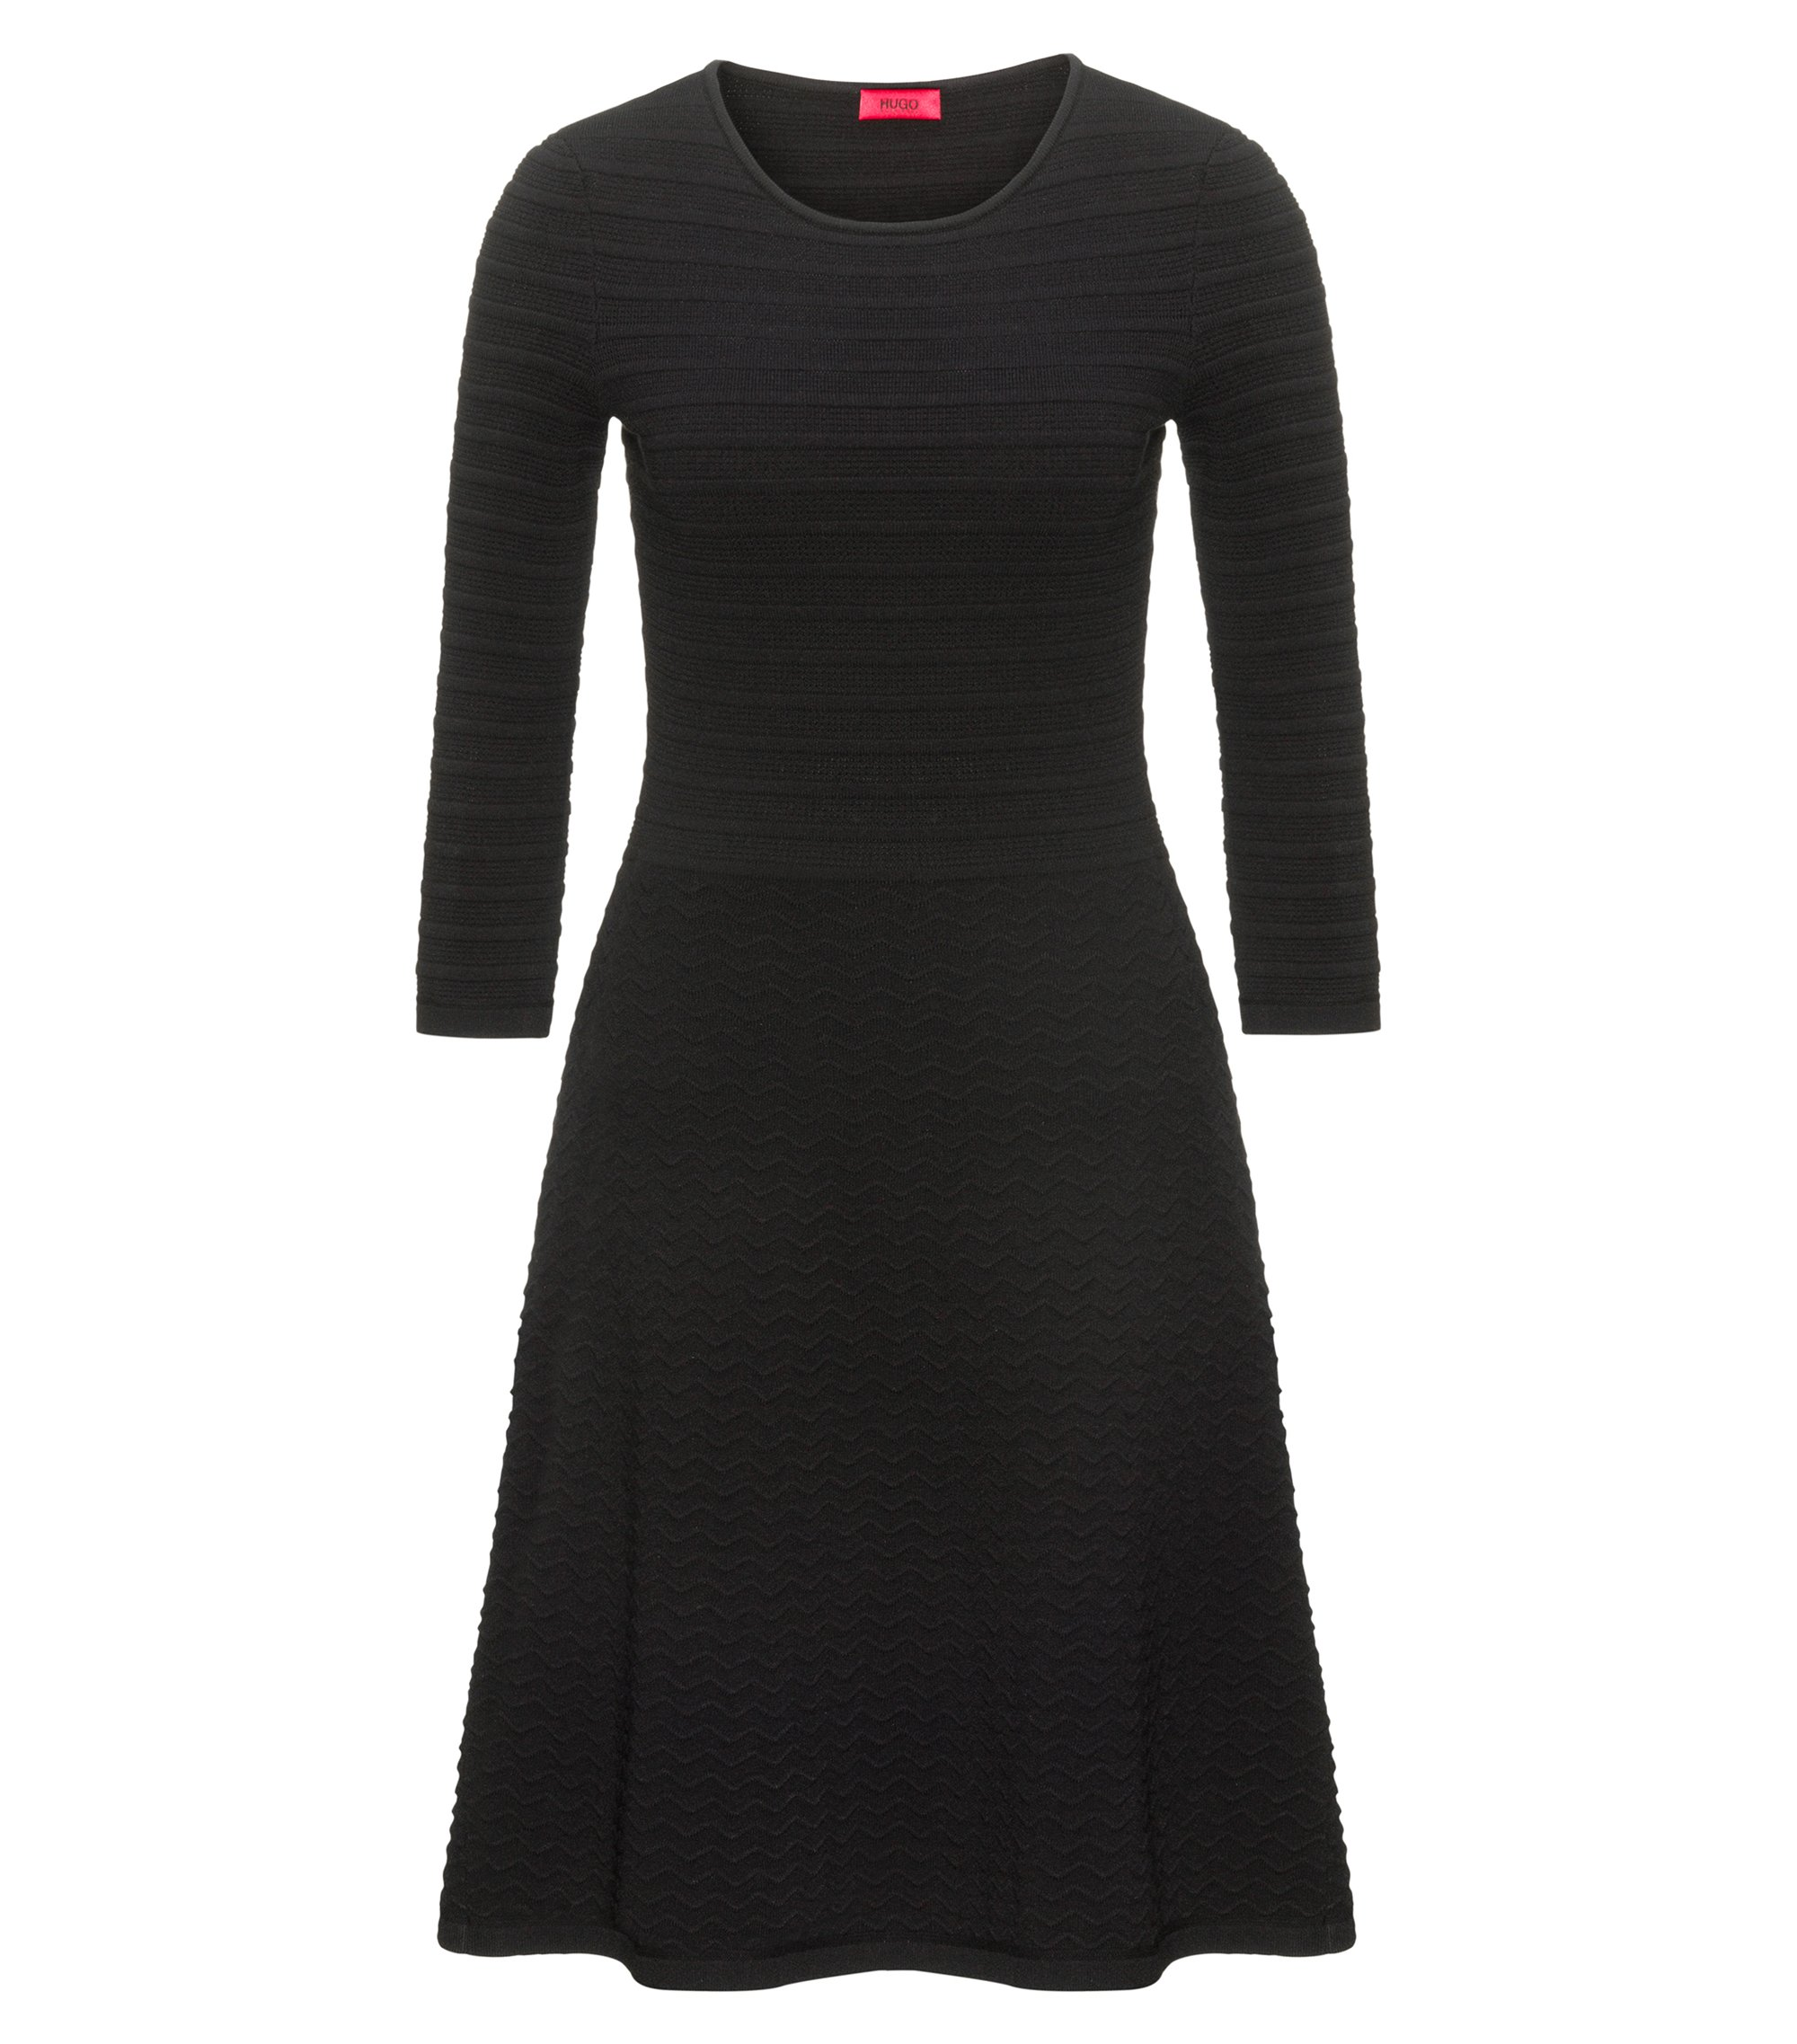 Crew-neck knitted dress in mixed 3D structures, Black